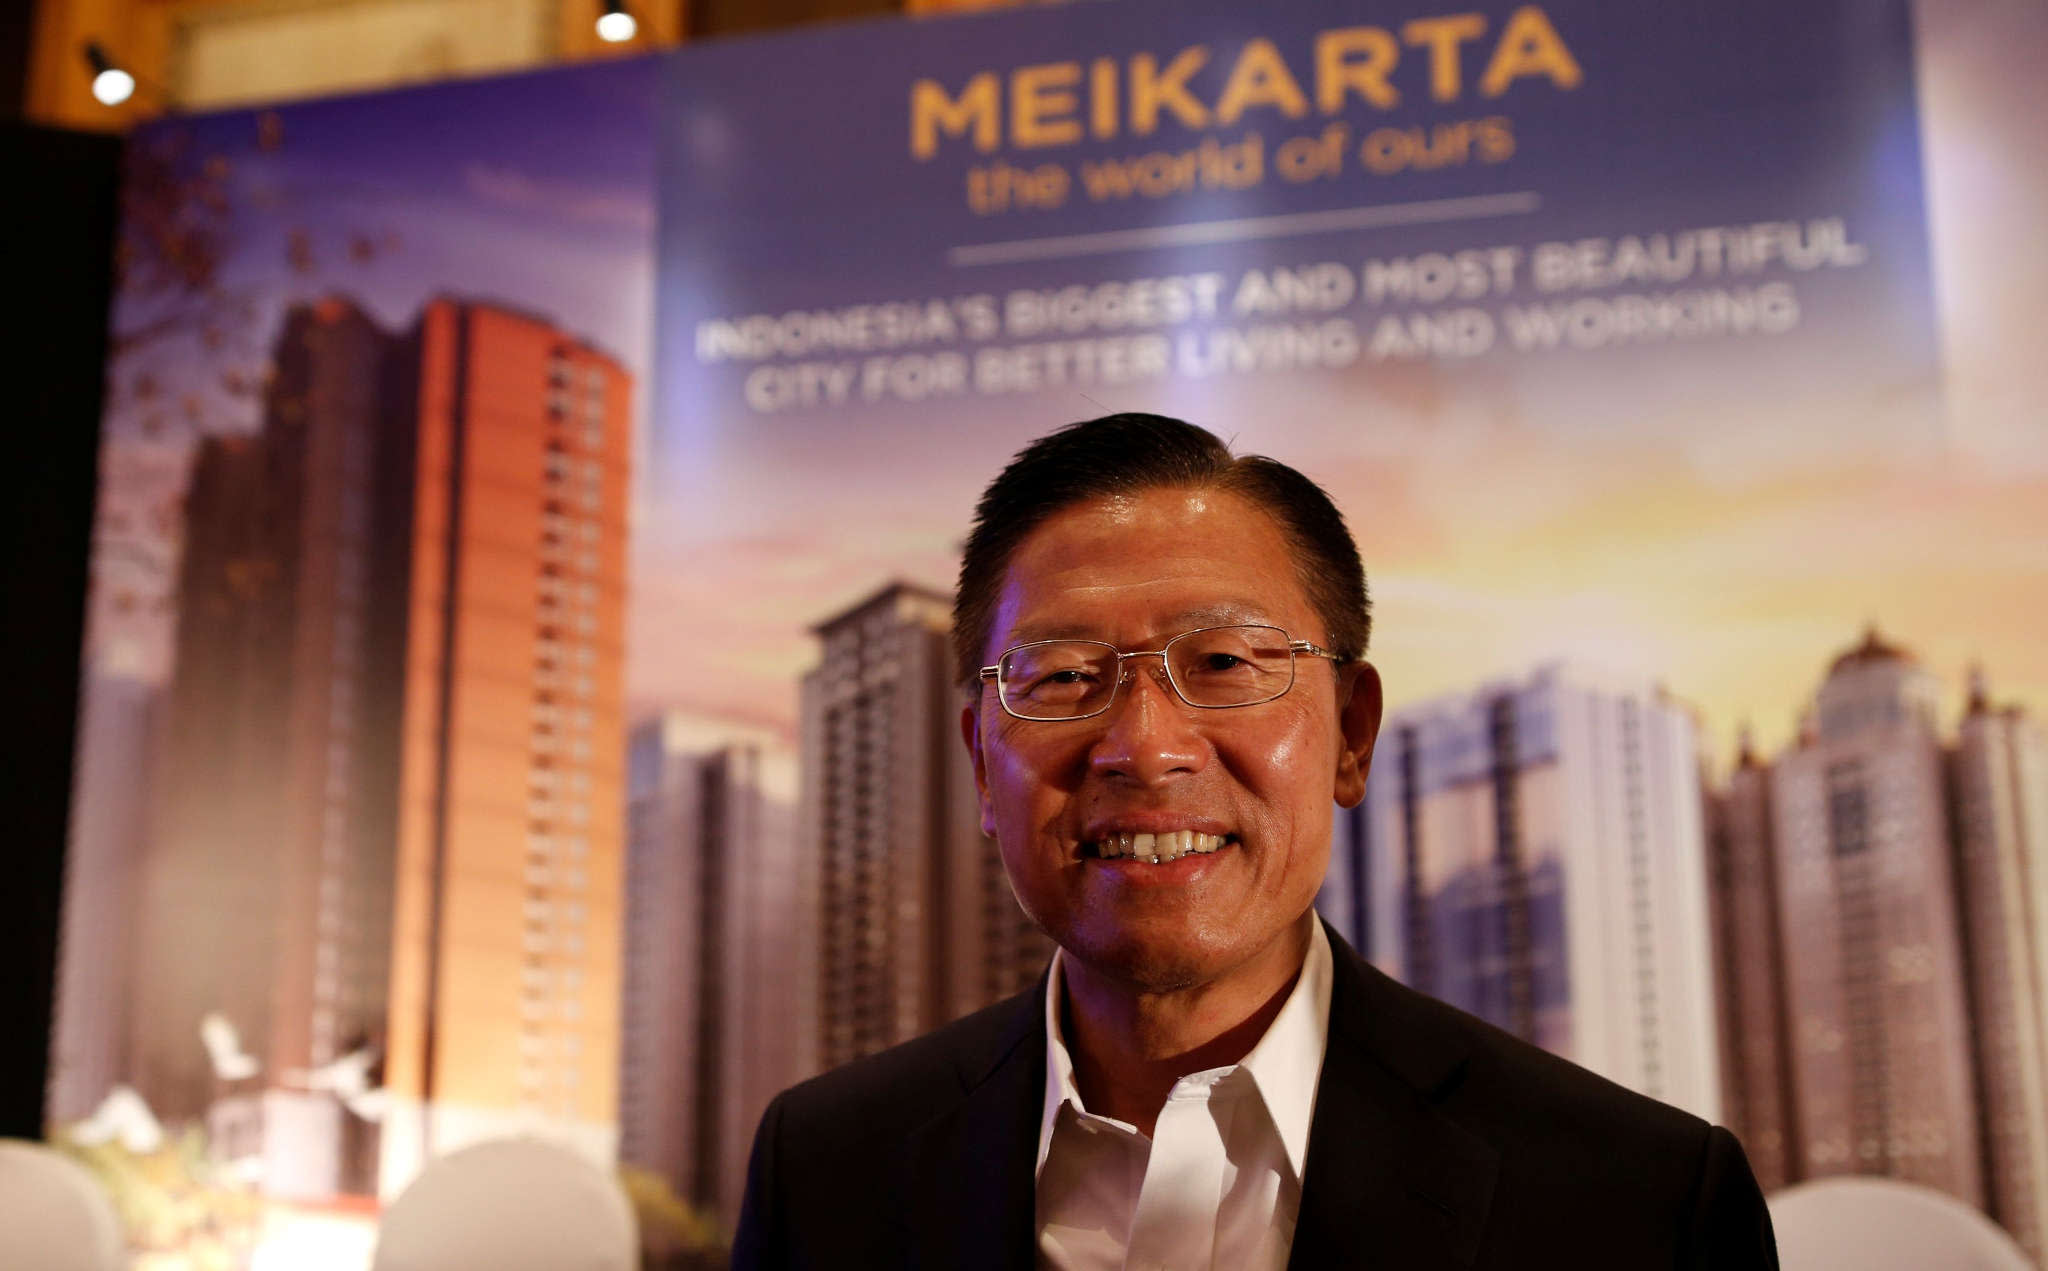 James Riady Ceo Of Indonesian Conglomerate Lippo Group Poses After Announcing The Meikarta Project At A News Conference In Jakarta In May